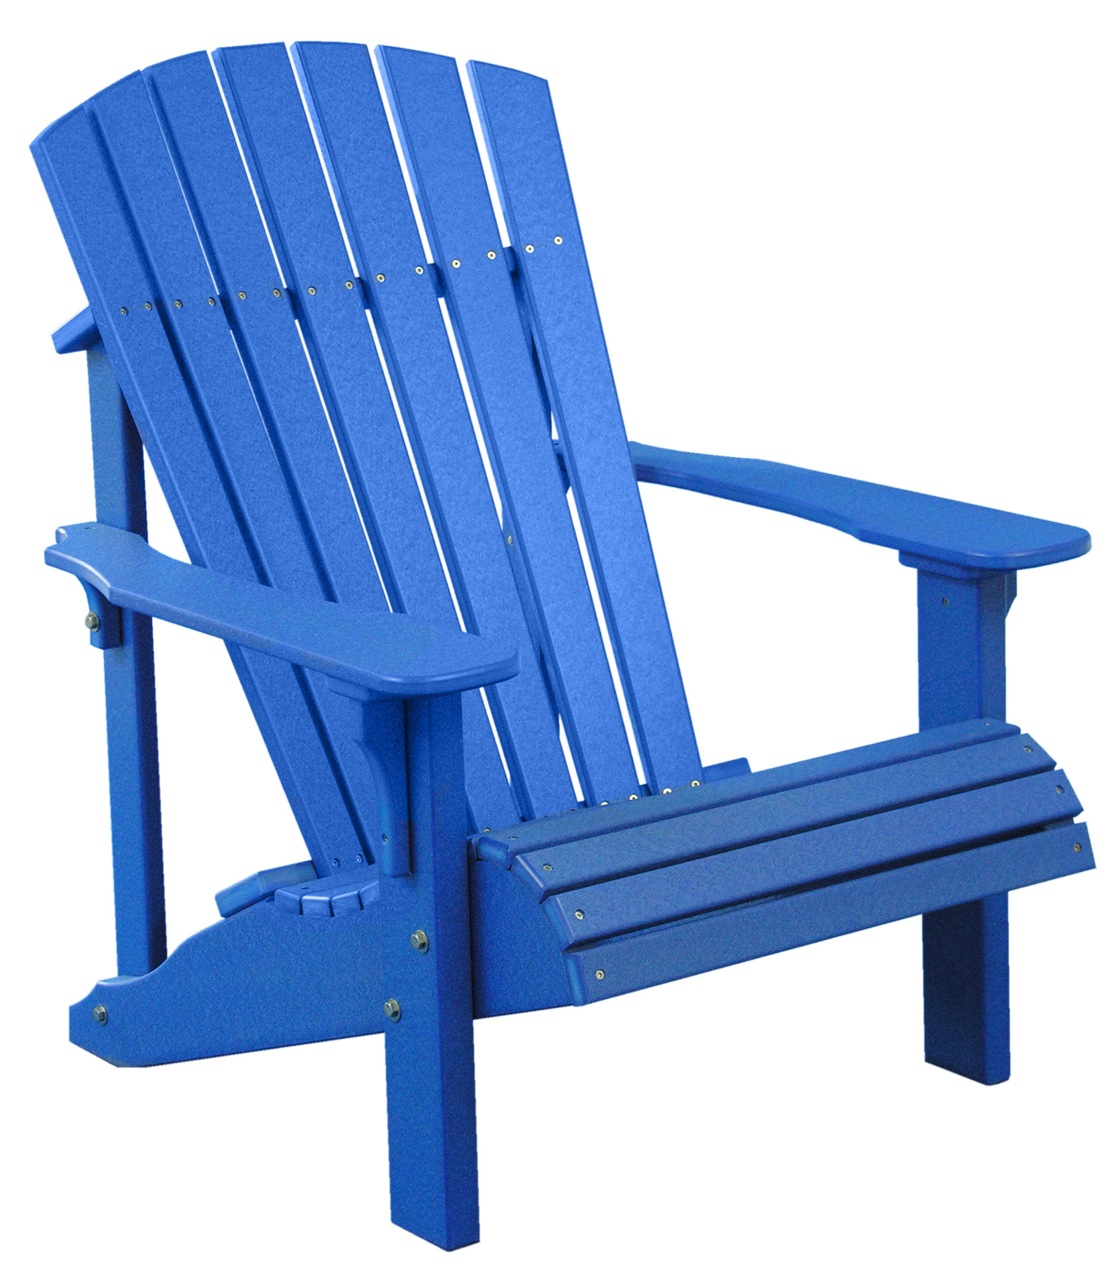 88+ Adirondack Chair Clip Art.